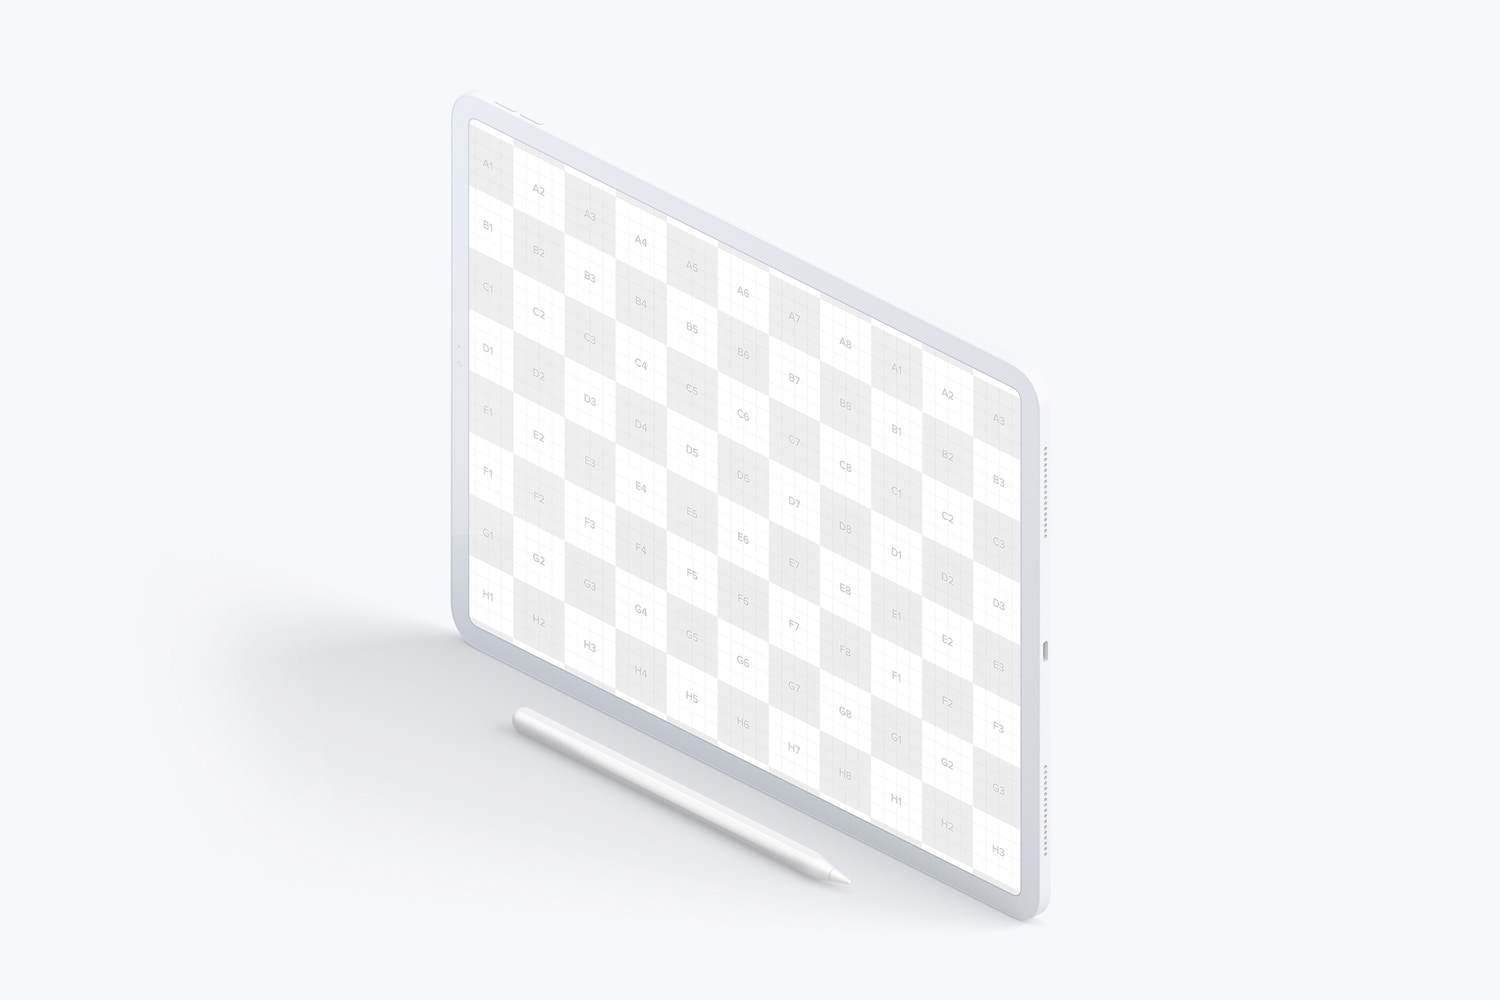 Clay iPad Pro 12.9 Mockup, Isometric Left View 03 (2) by Original Mockups on Original Mockups